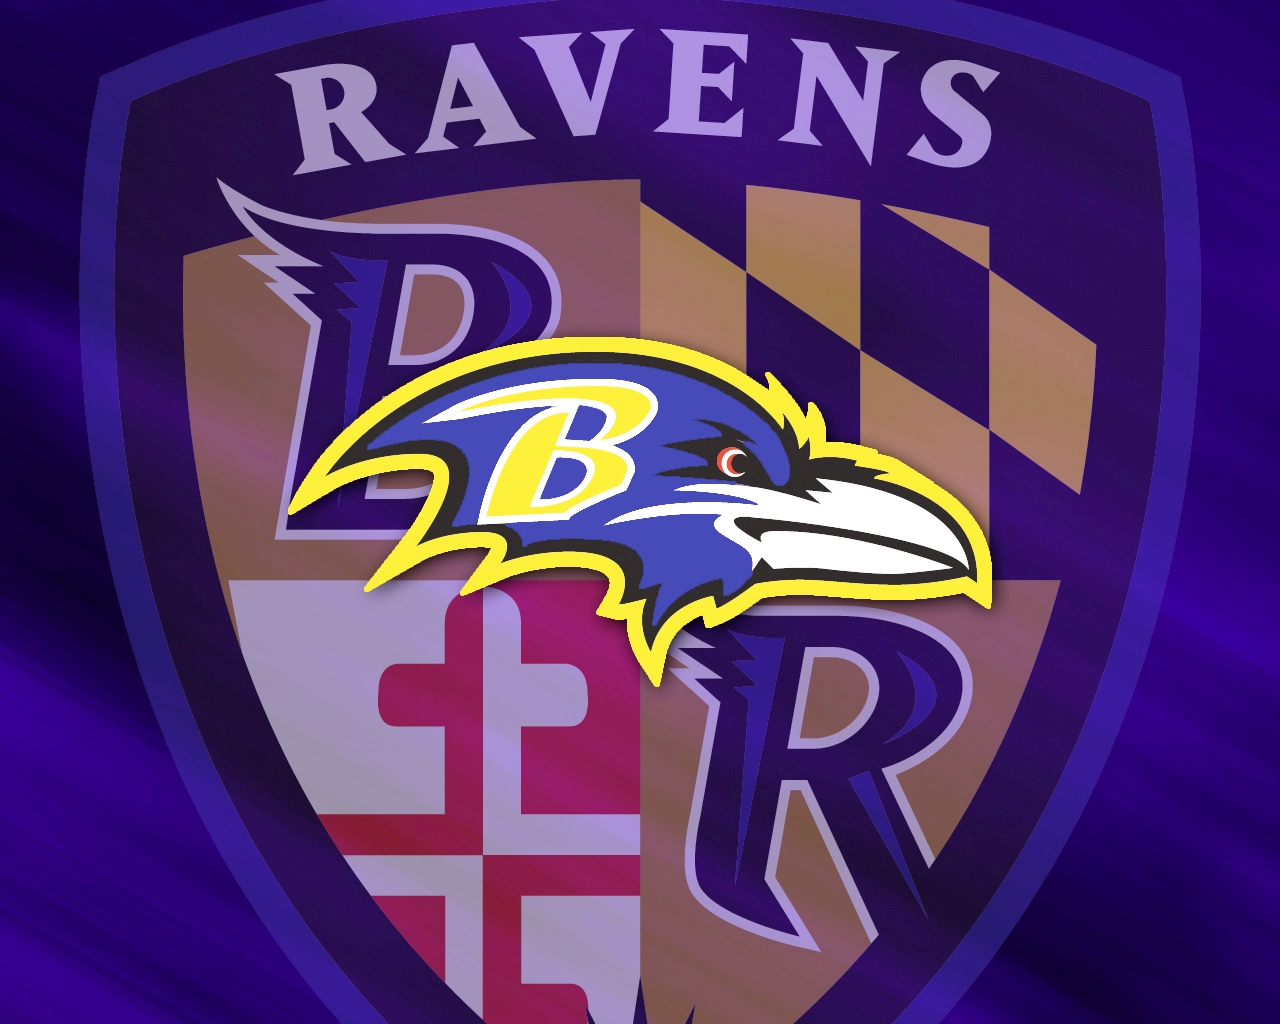 Baltimore Ravens Wallpapers - Wallpaper Cave